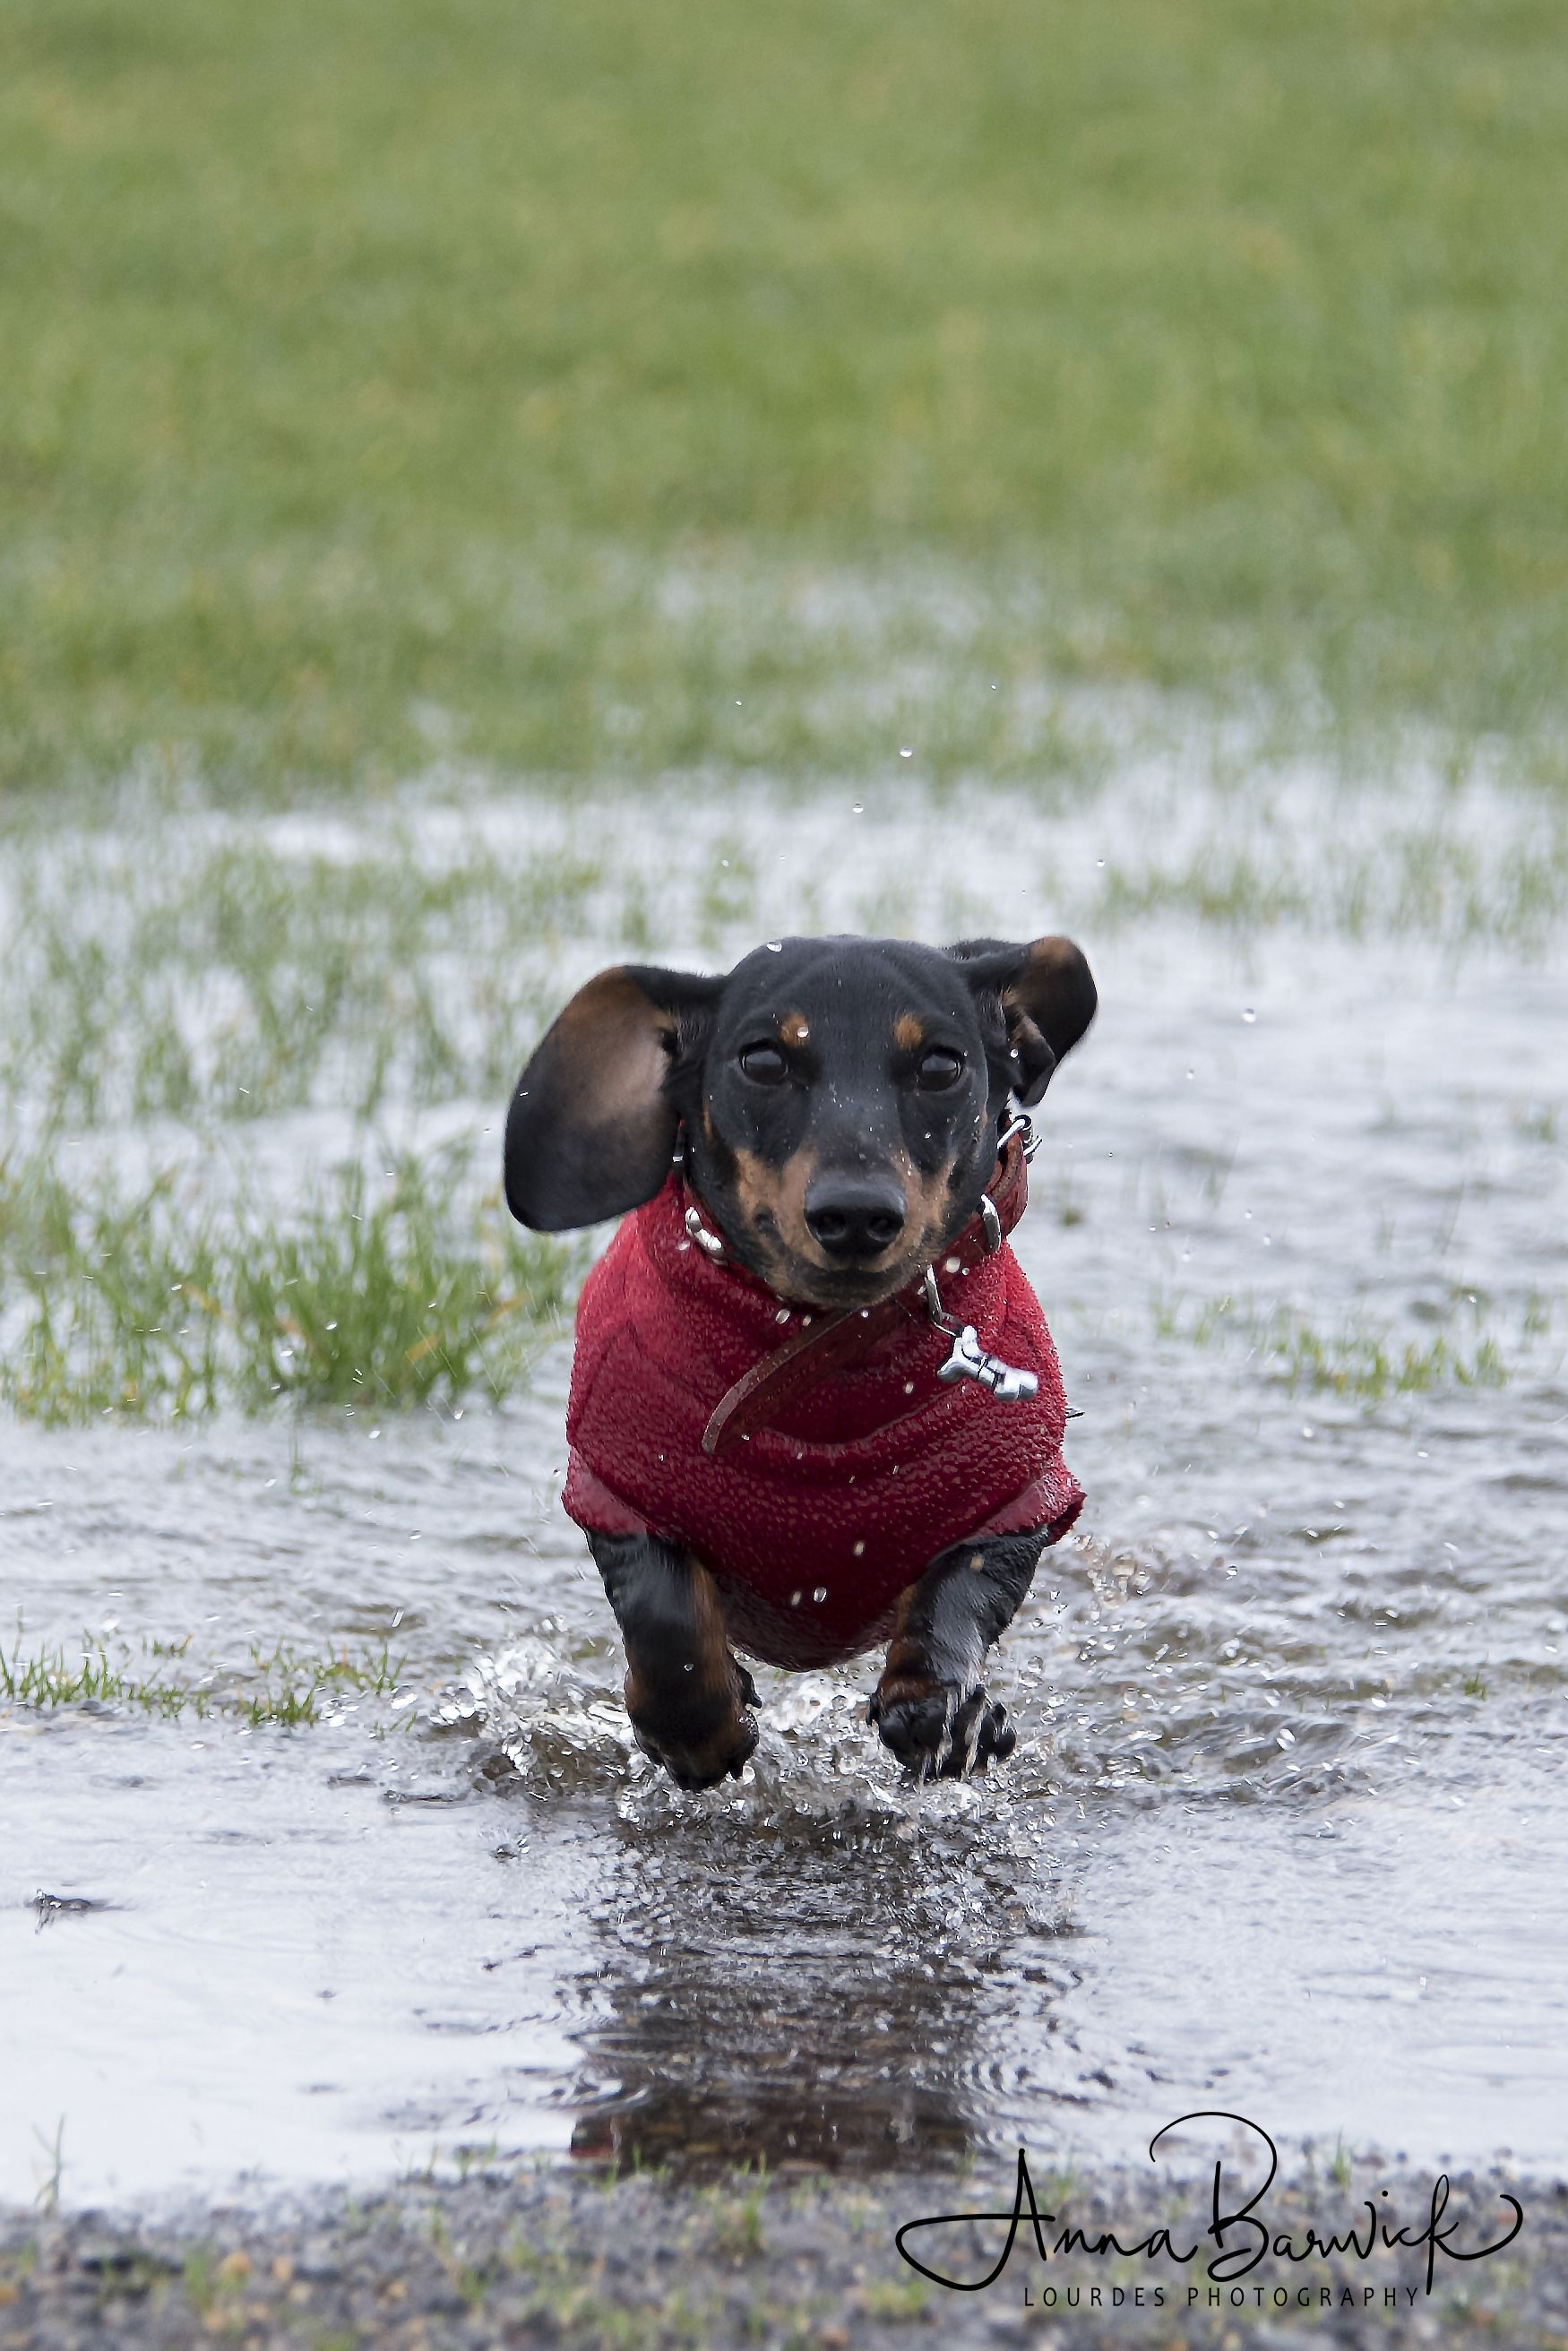 Cute Sausage Dog Puppy Splashing Through Puddle Dachshund Dog Dachshund Lovers Dachshund